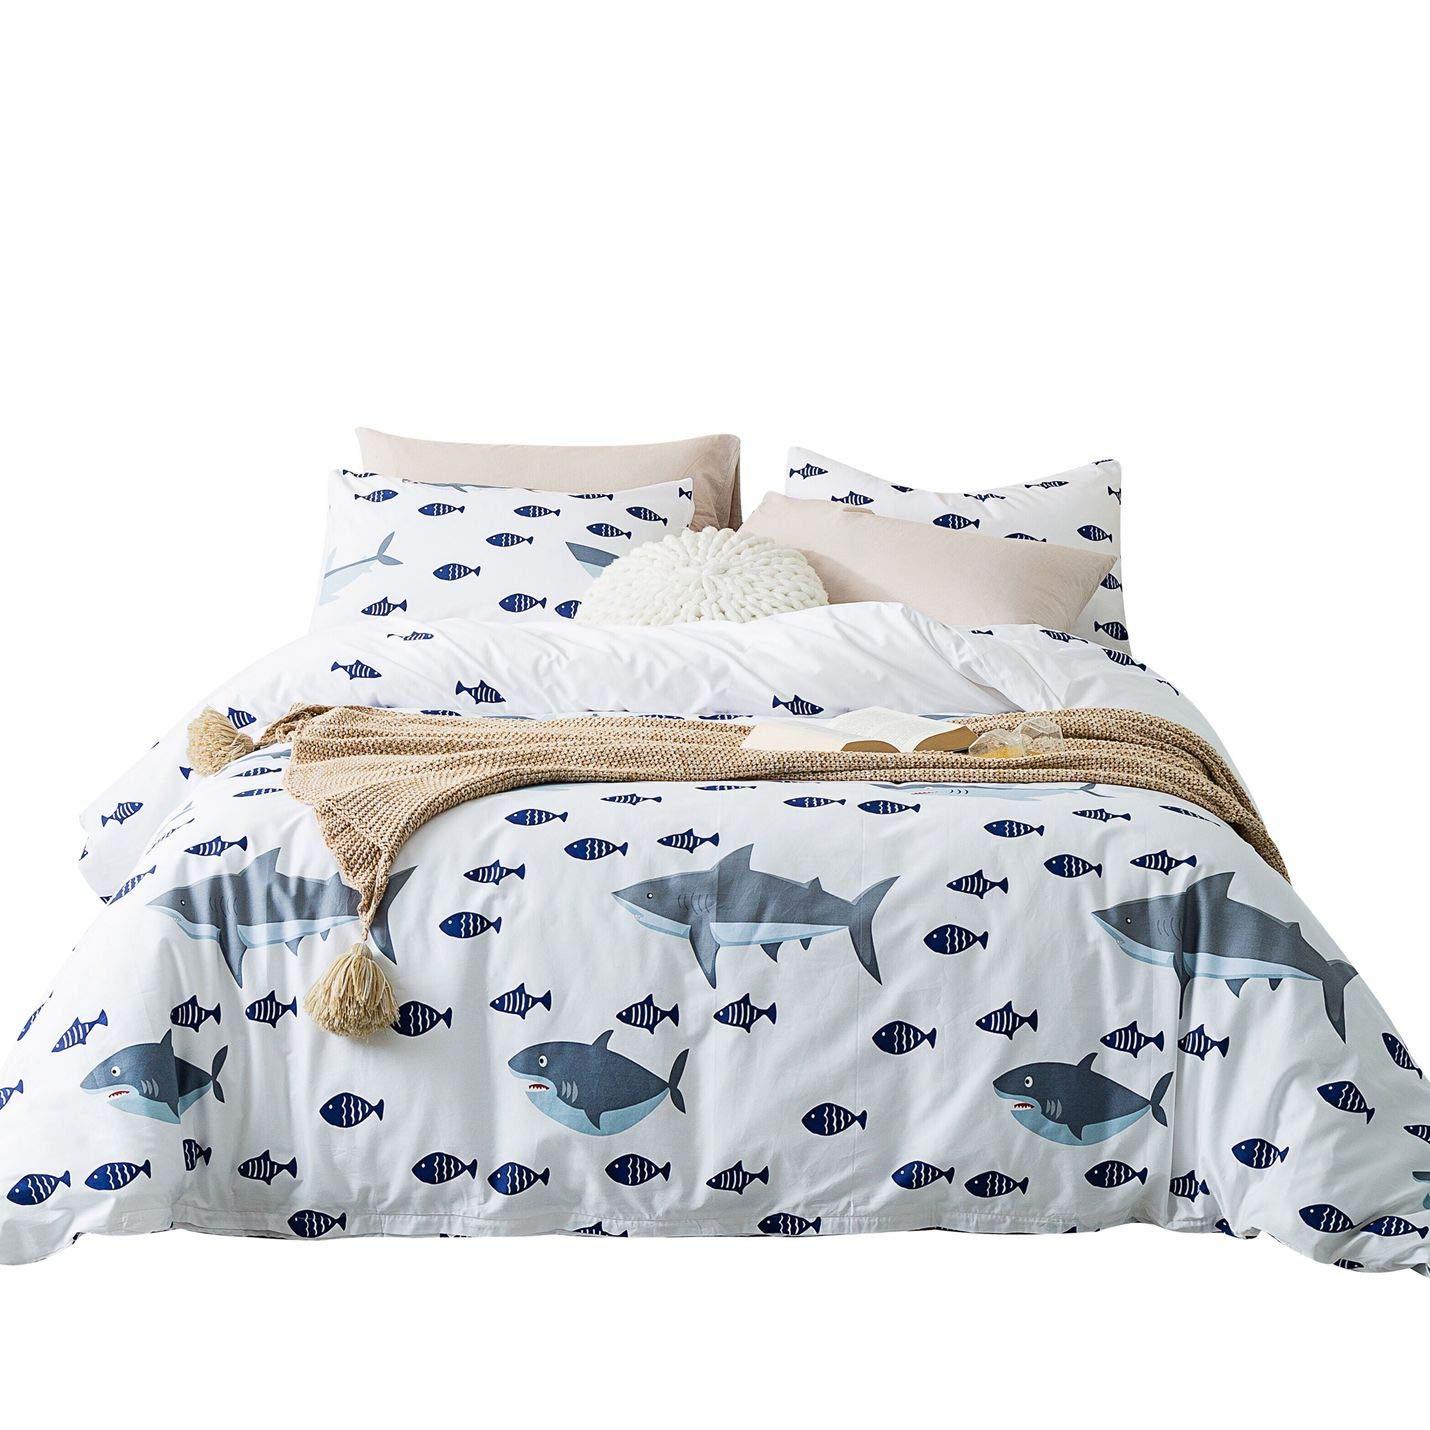 YuHeGuoJi 3 Pieces Shark Printed Duvet Cover Sets 100% Cotton White King Size Animal Pattern Bedding Set 1 Cartoon Fish Duvet Cover with Zipper Ties 2 Pillowcases Luxury Quality Soft Hypoallergenic